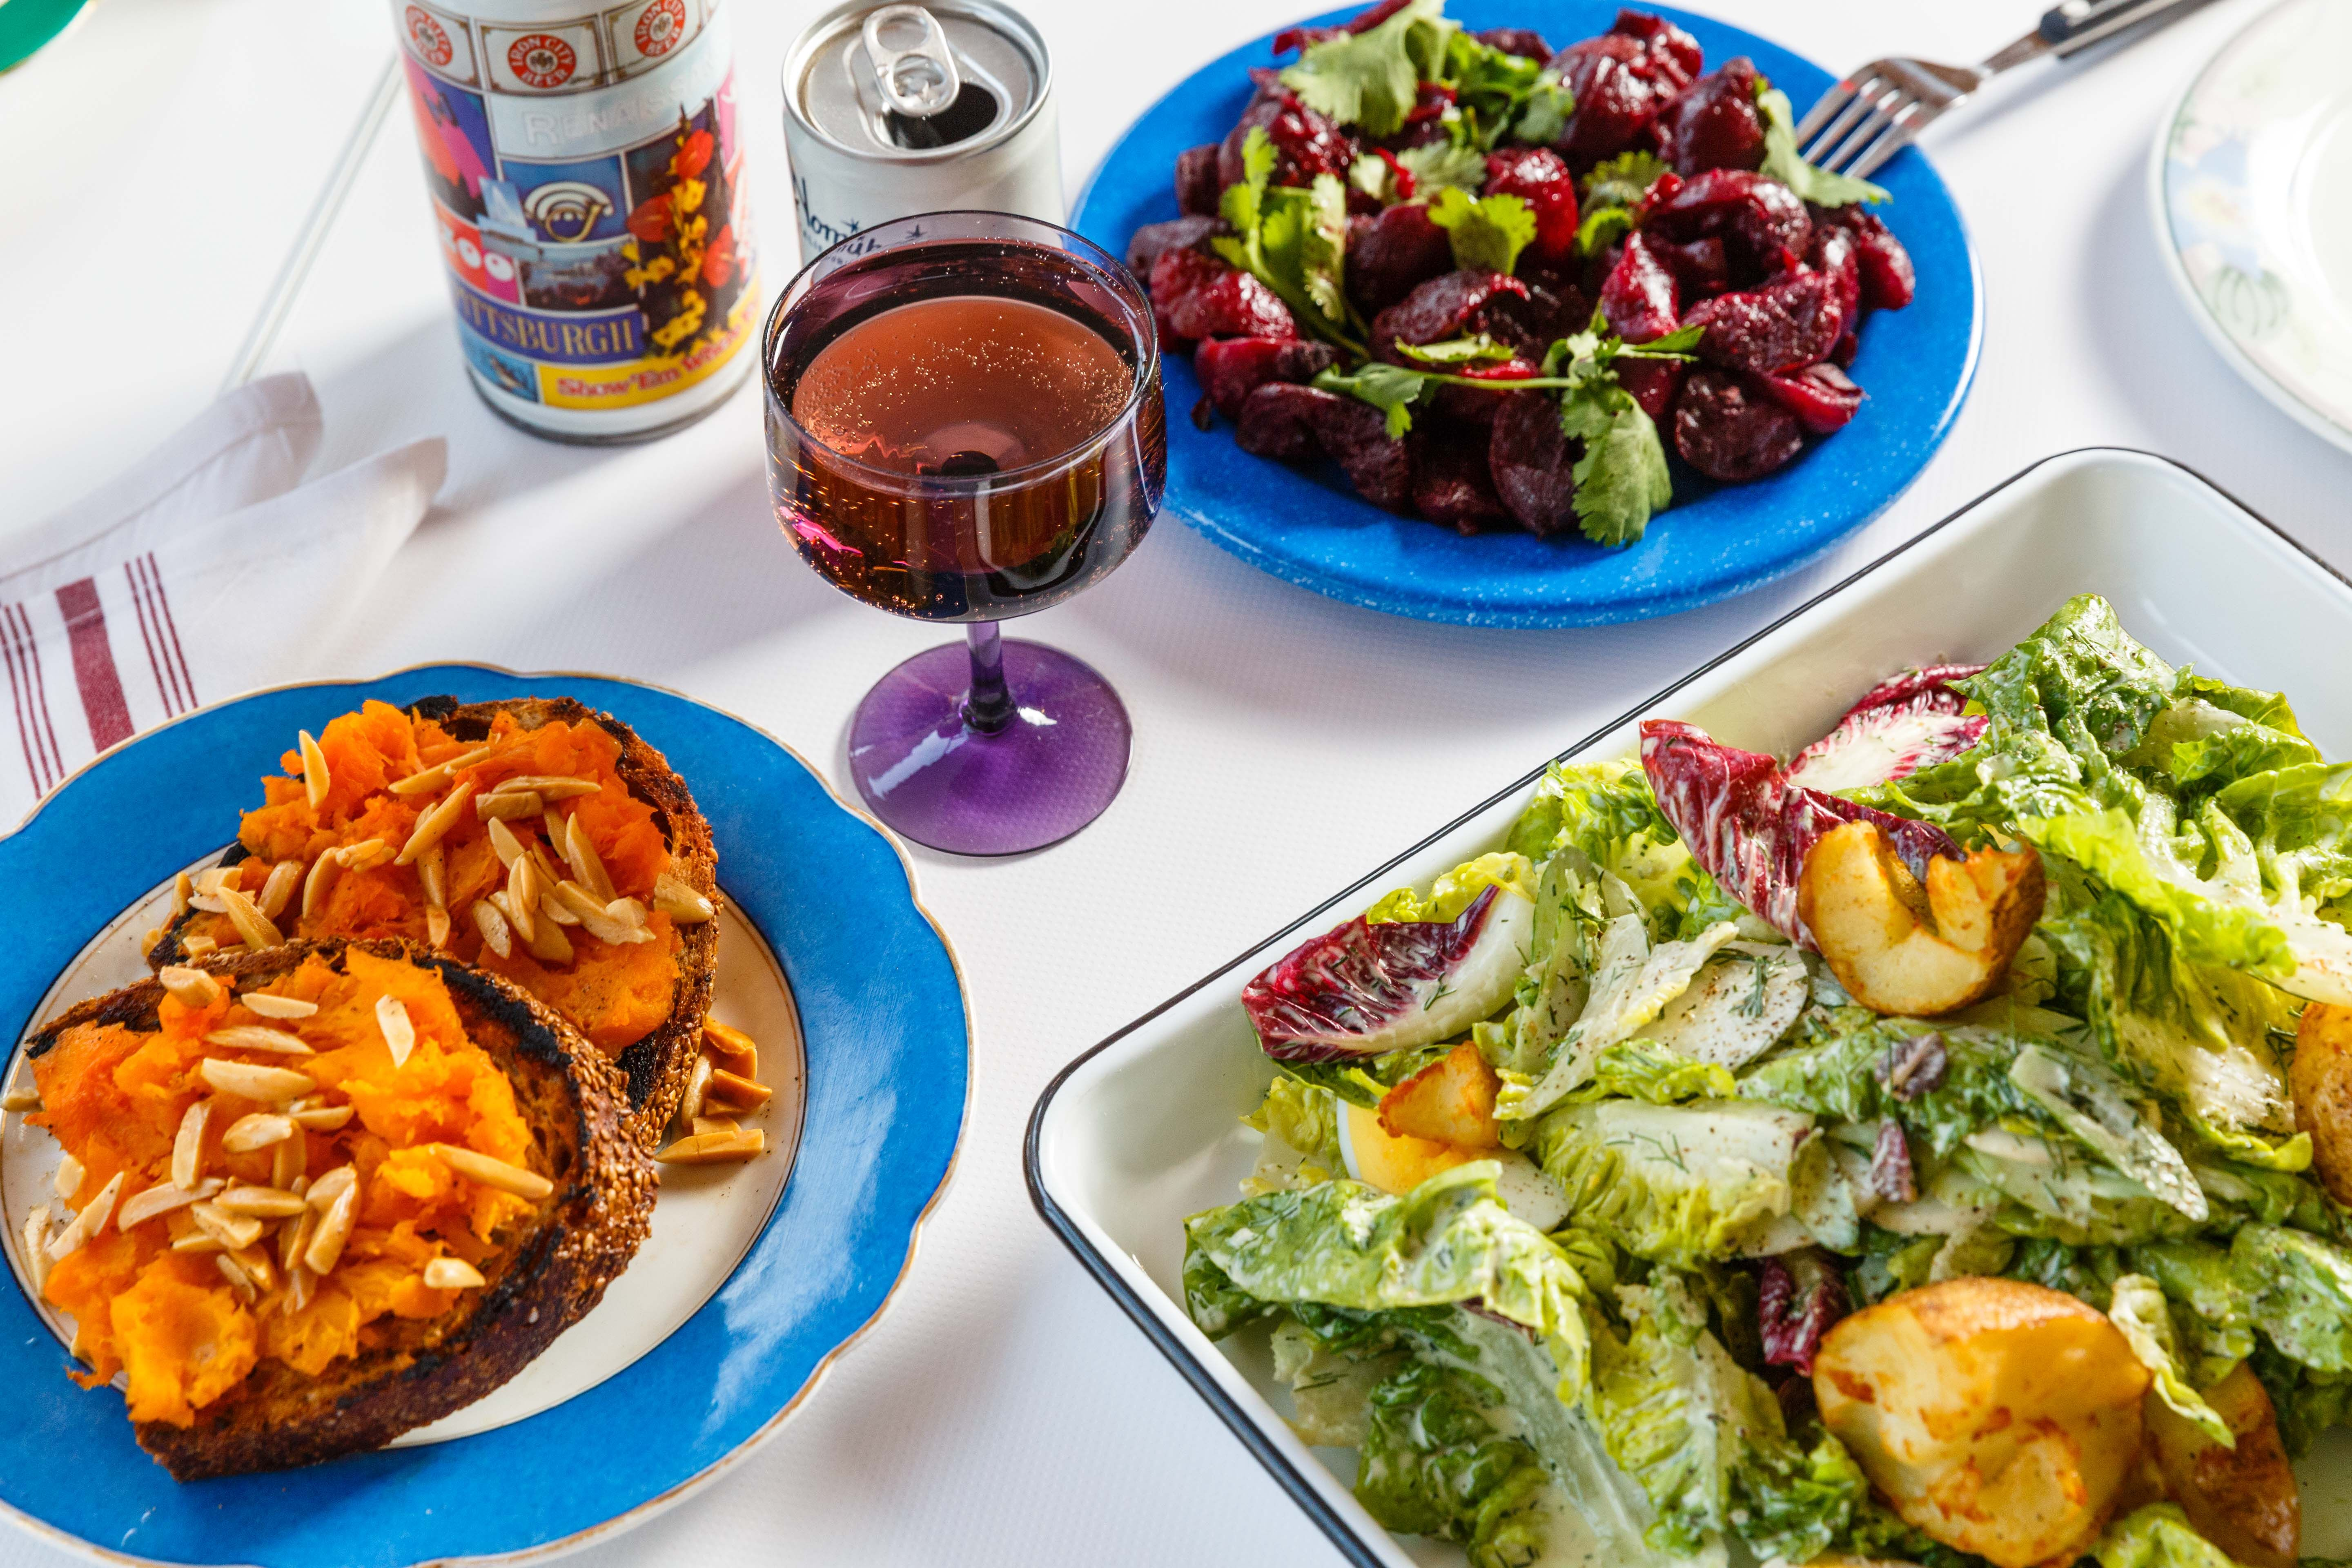 Squash toast and salad on colorful plates spread across a white table at Gertie